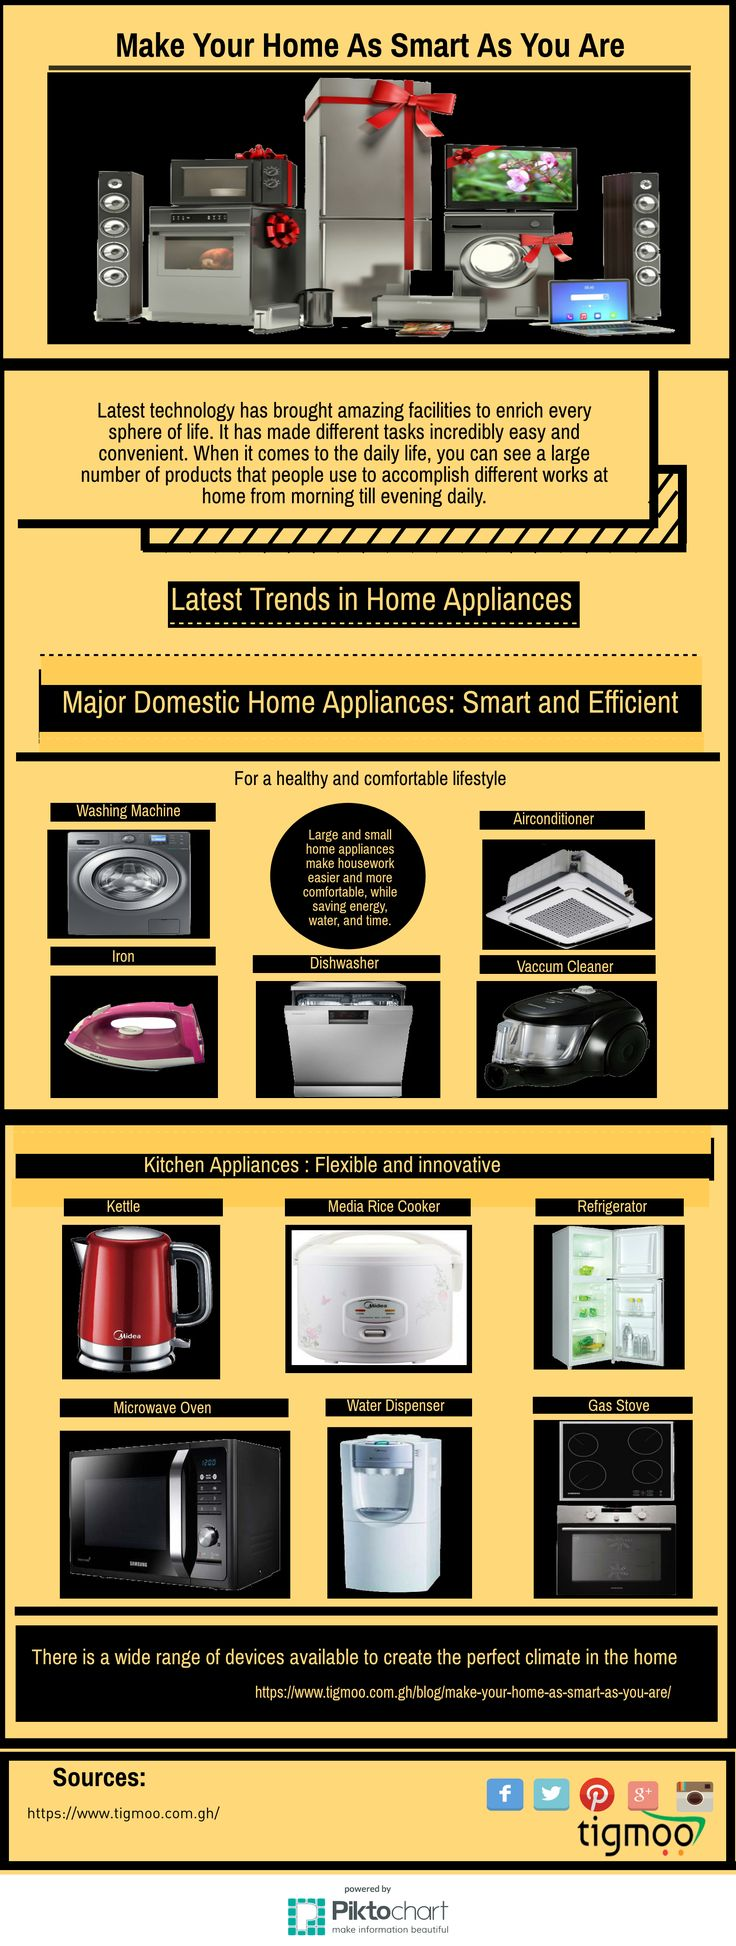 Make your life happier and more pleasant with smart Home Appliances : @Infographic Click here to view the full #Infographic: https://create.piktochart.com/output/20295387-home-kitchen-appliances #homeandkitchenappliances #washingmachine, #microwaveoven, #juicermixeri